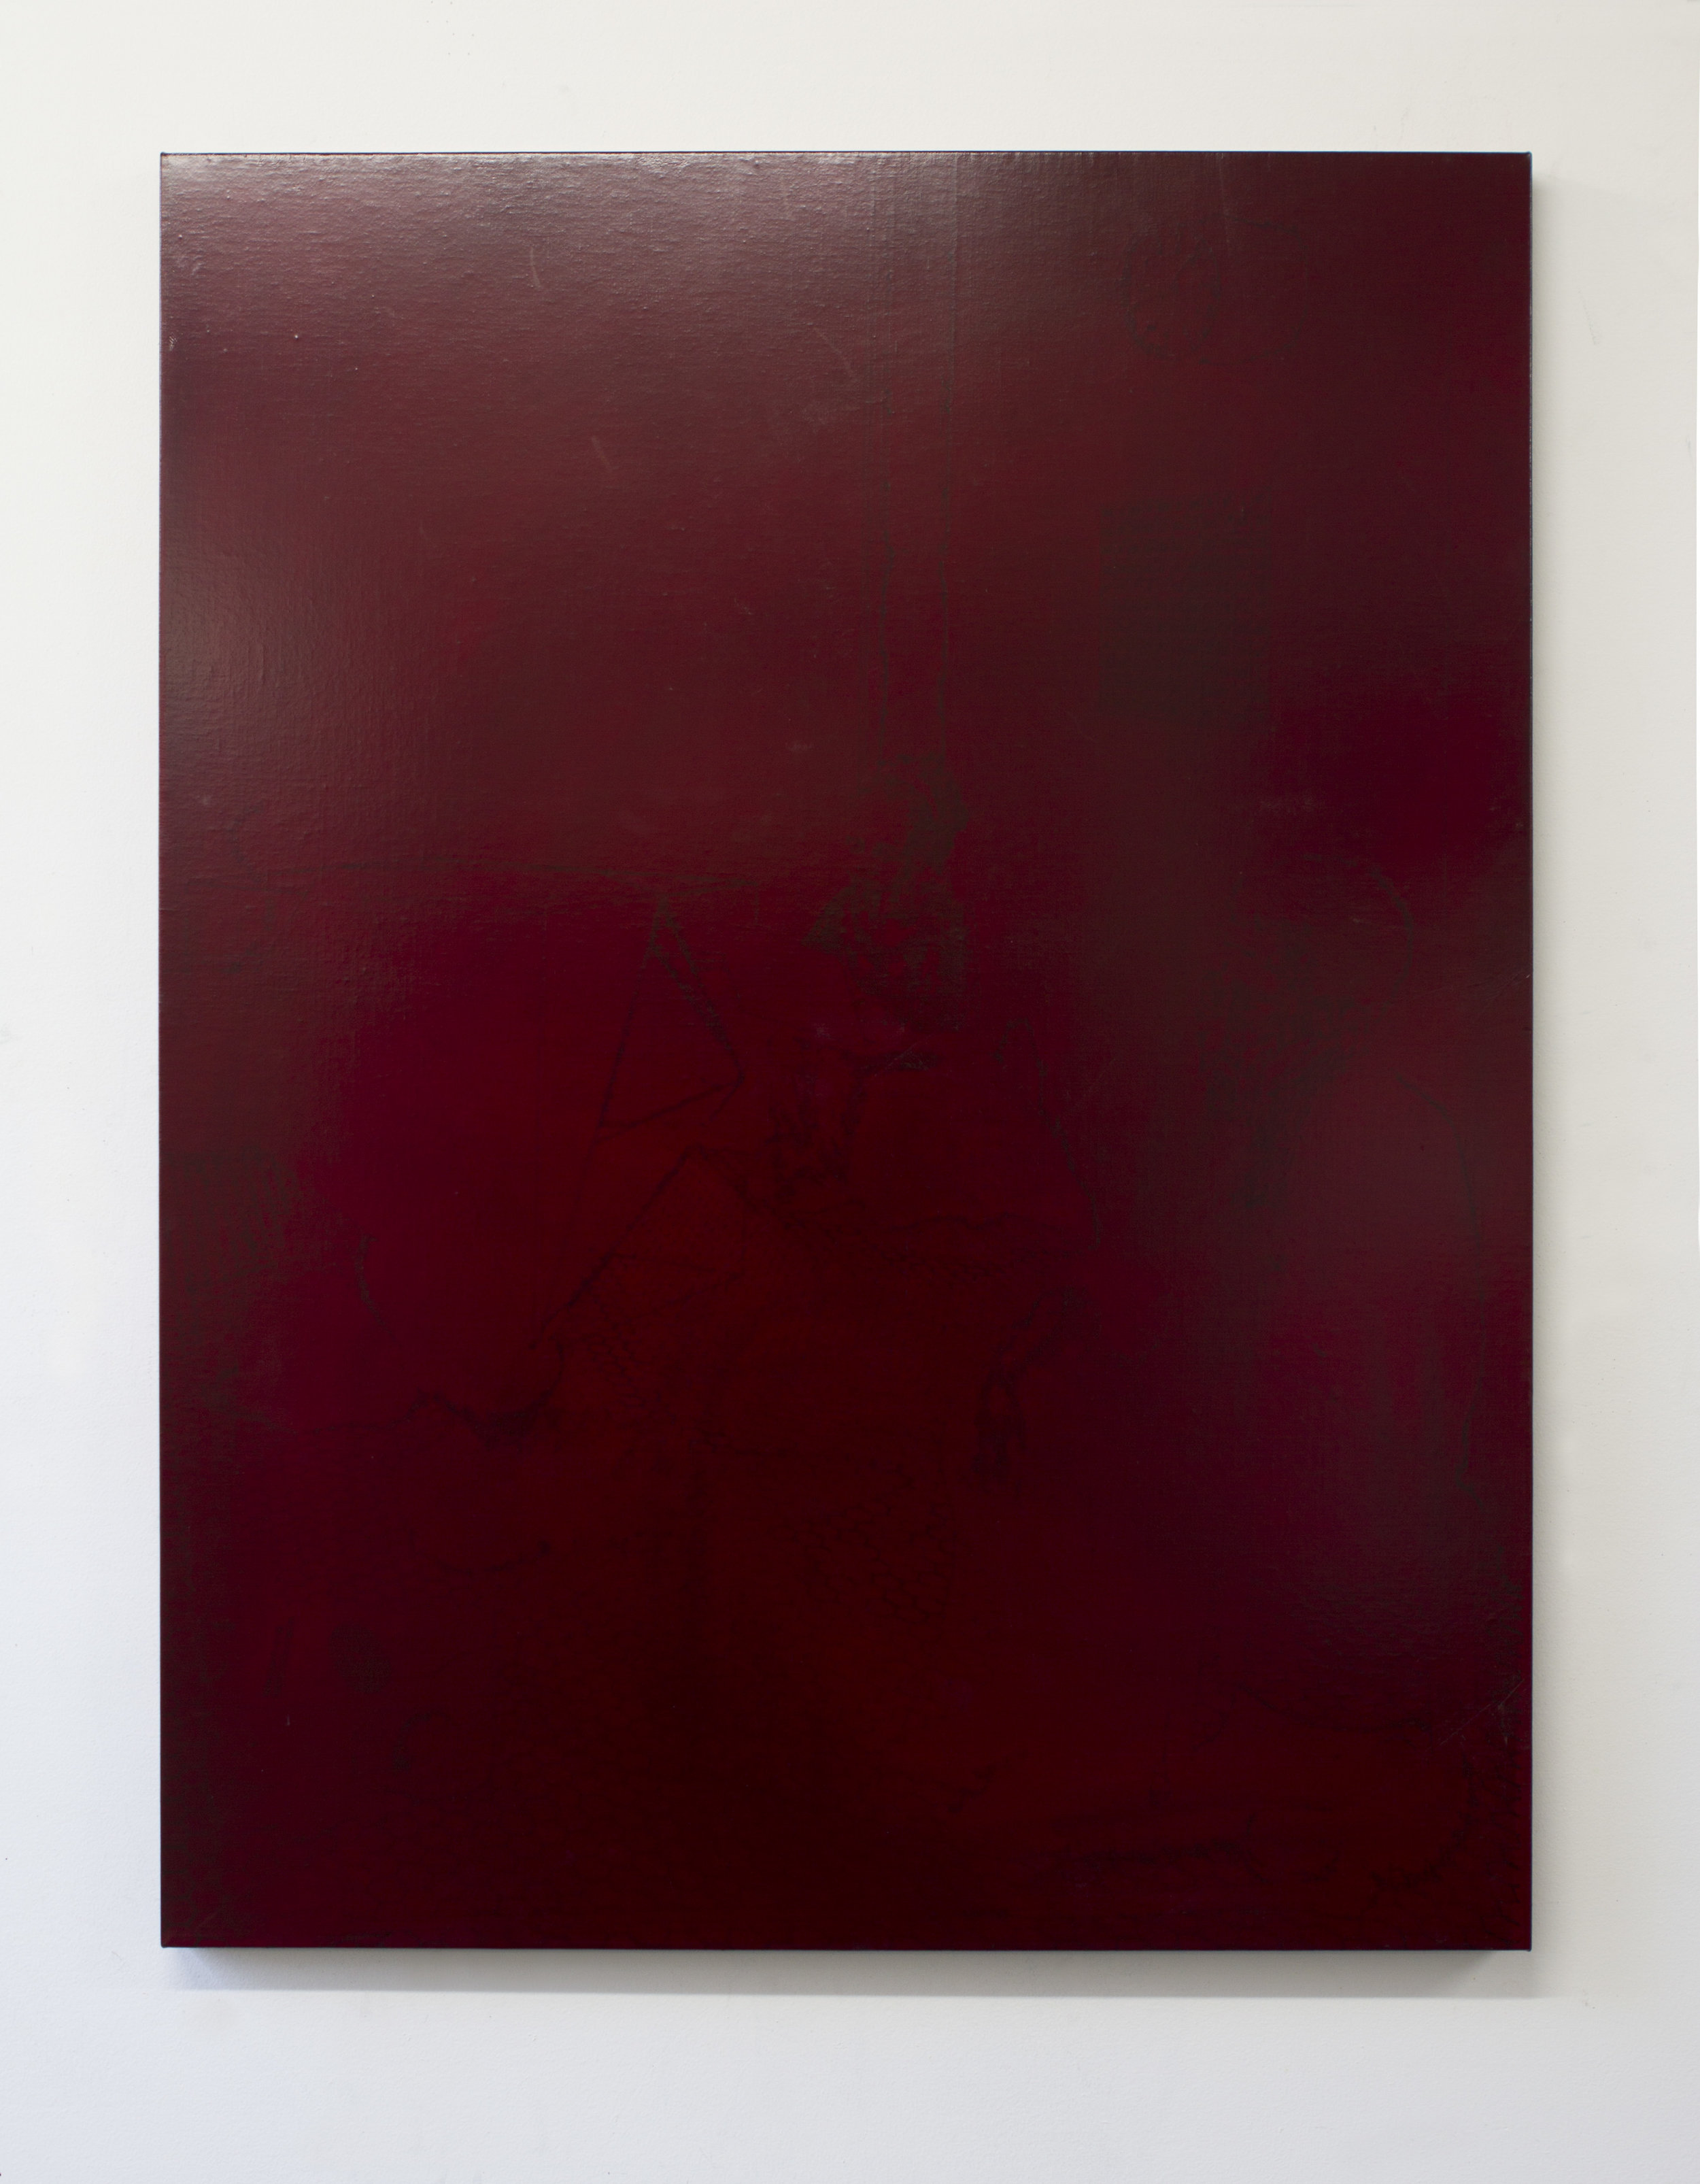 Study for Rubylith 2016 Rubylith and pigment on linen 38 x 29 inches